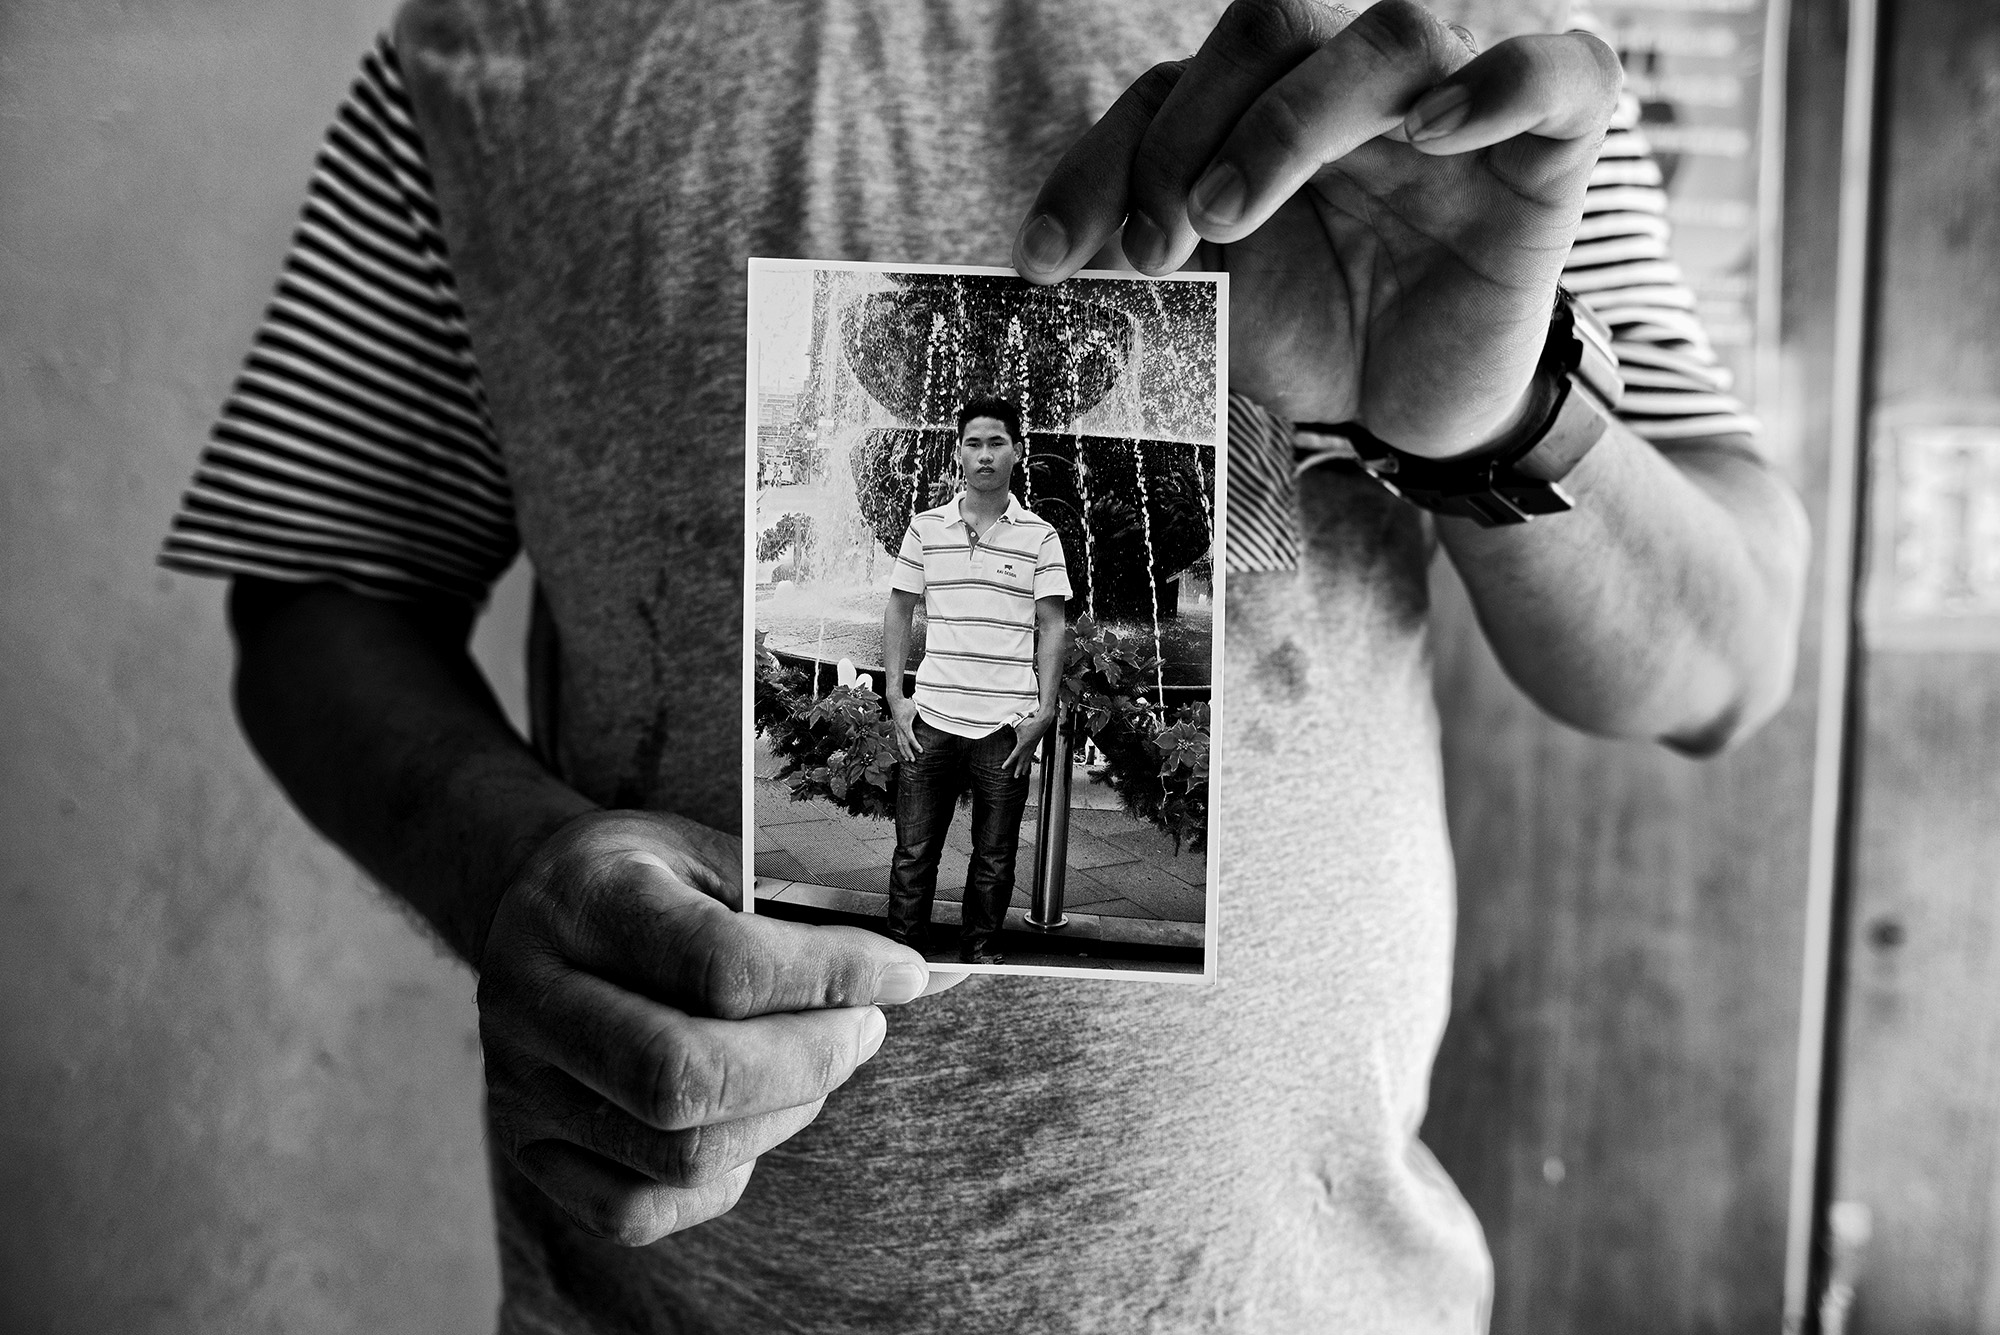 A 33-year-old man from the Chin community from Burma holds a photo of his 20-year-old nephew.